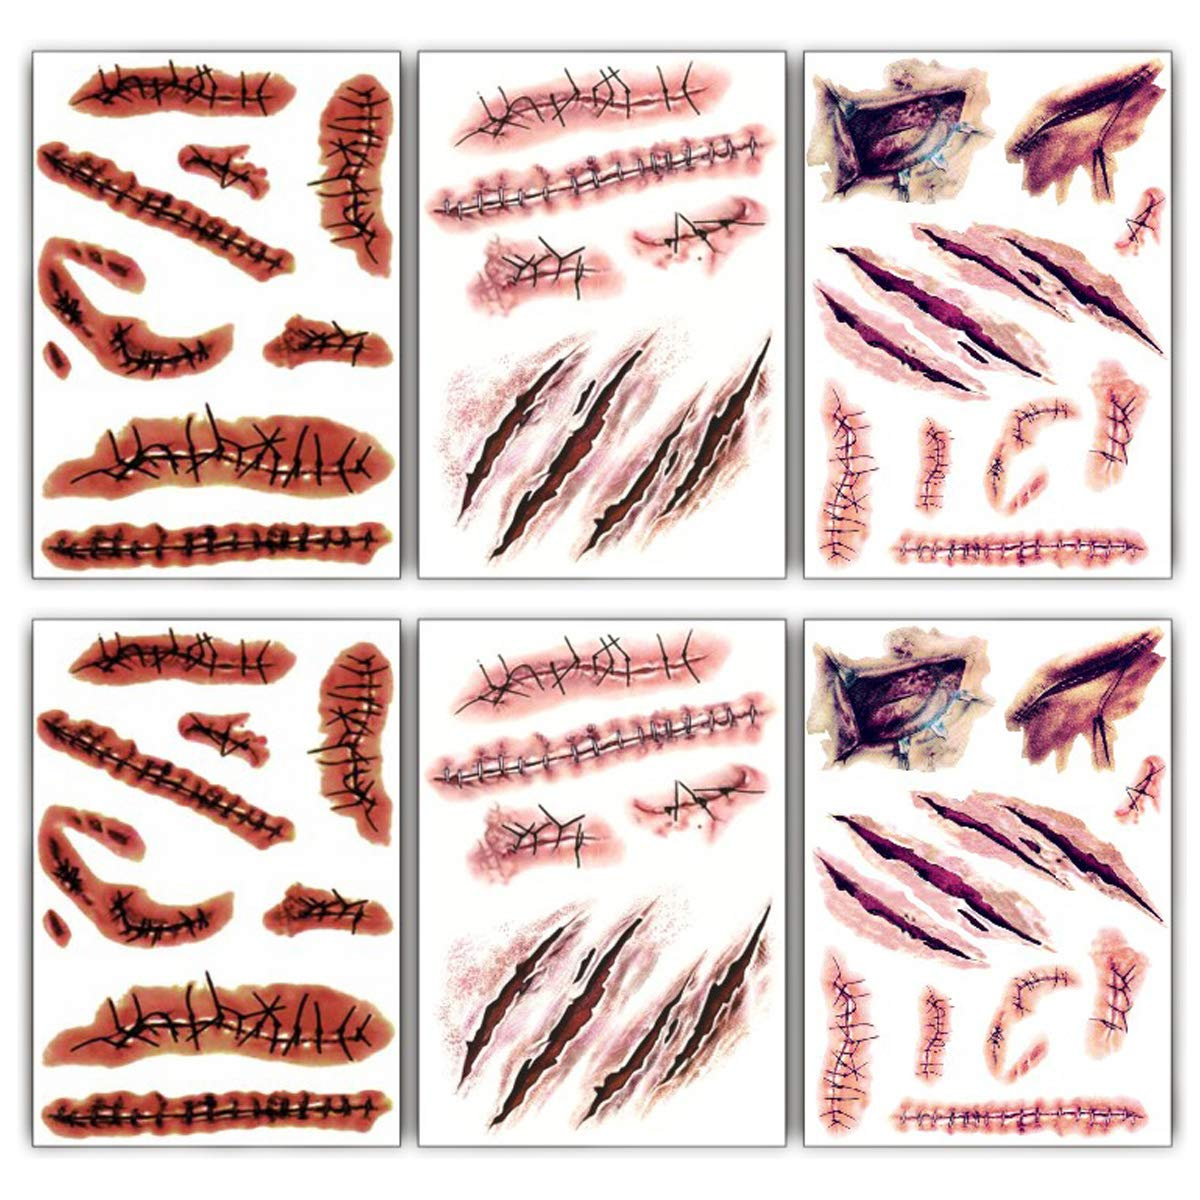 Large Size Halloween Temporary Tattoos Fake Wound Bloody Stitch Scars Scab Waterproof Temp Tattoo Stickers Body Art Decoration for Adults Kids Makeup Cosplay Costume Party(6 Sheets)